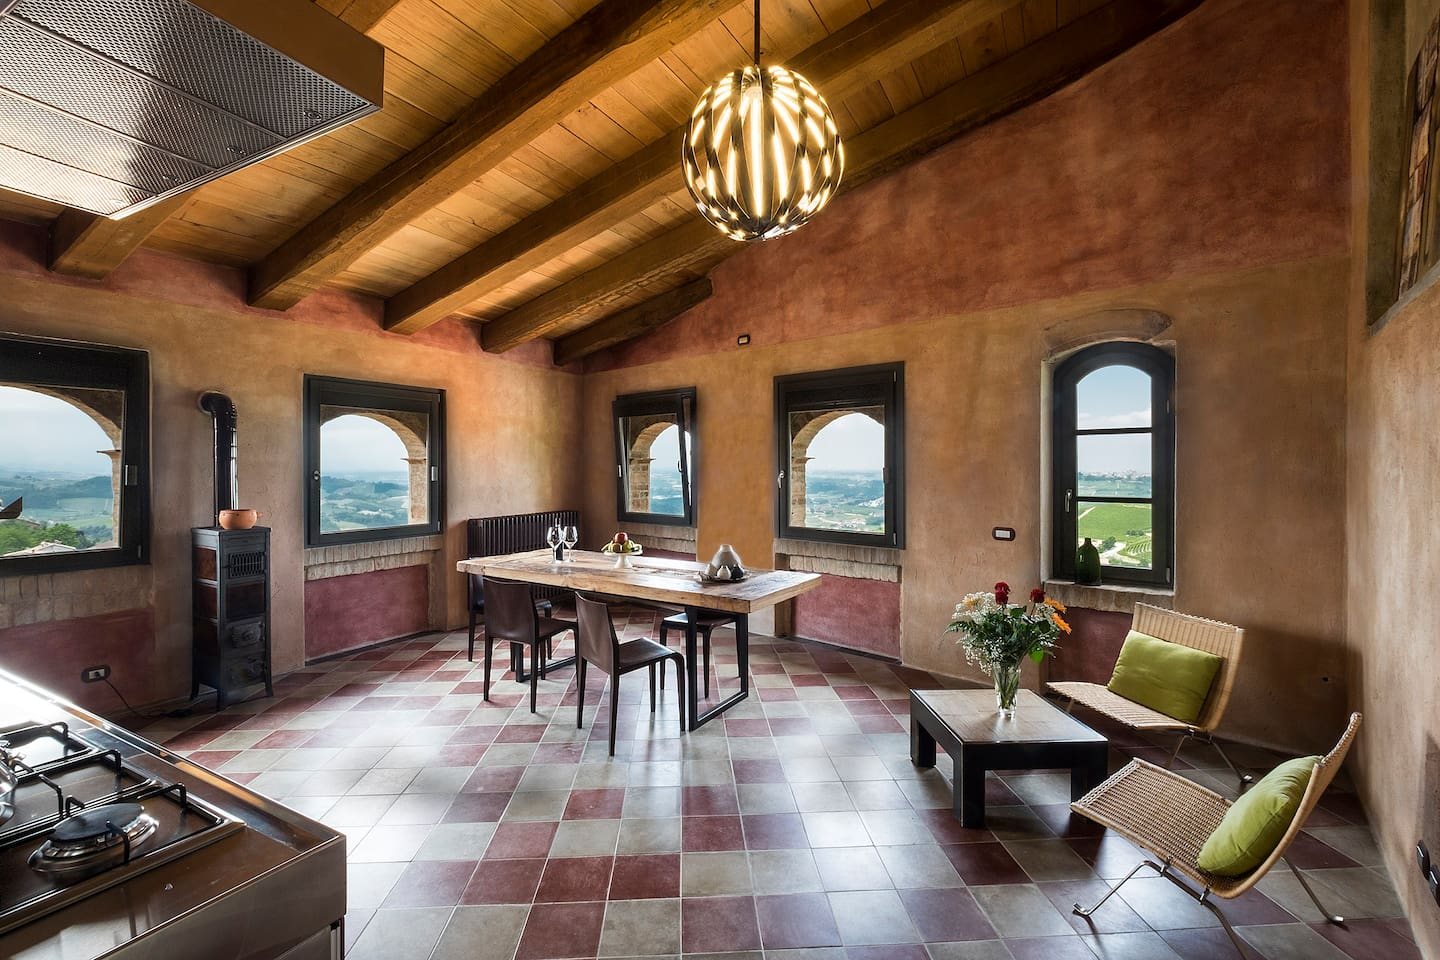 Stunning middle-age house with breath-taking views over vineyards and the alps